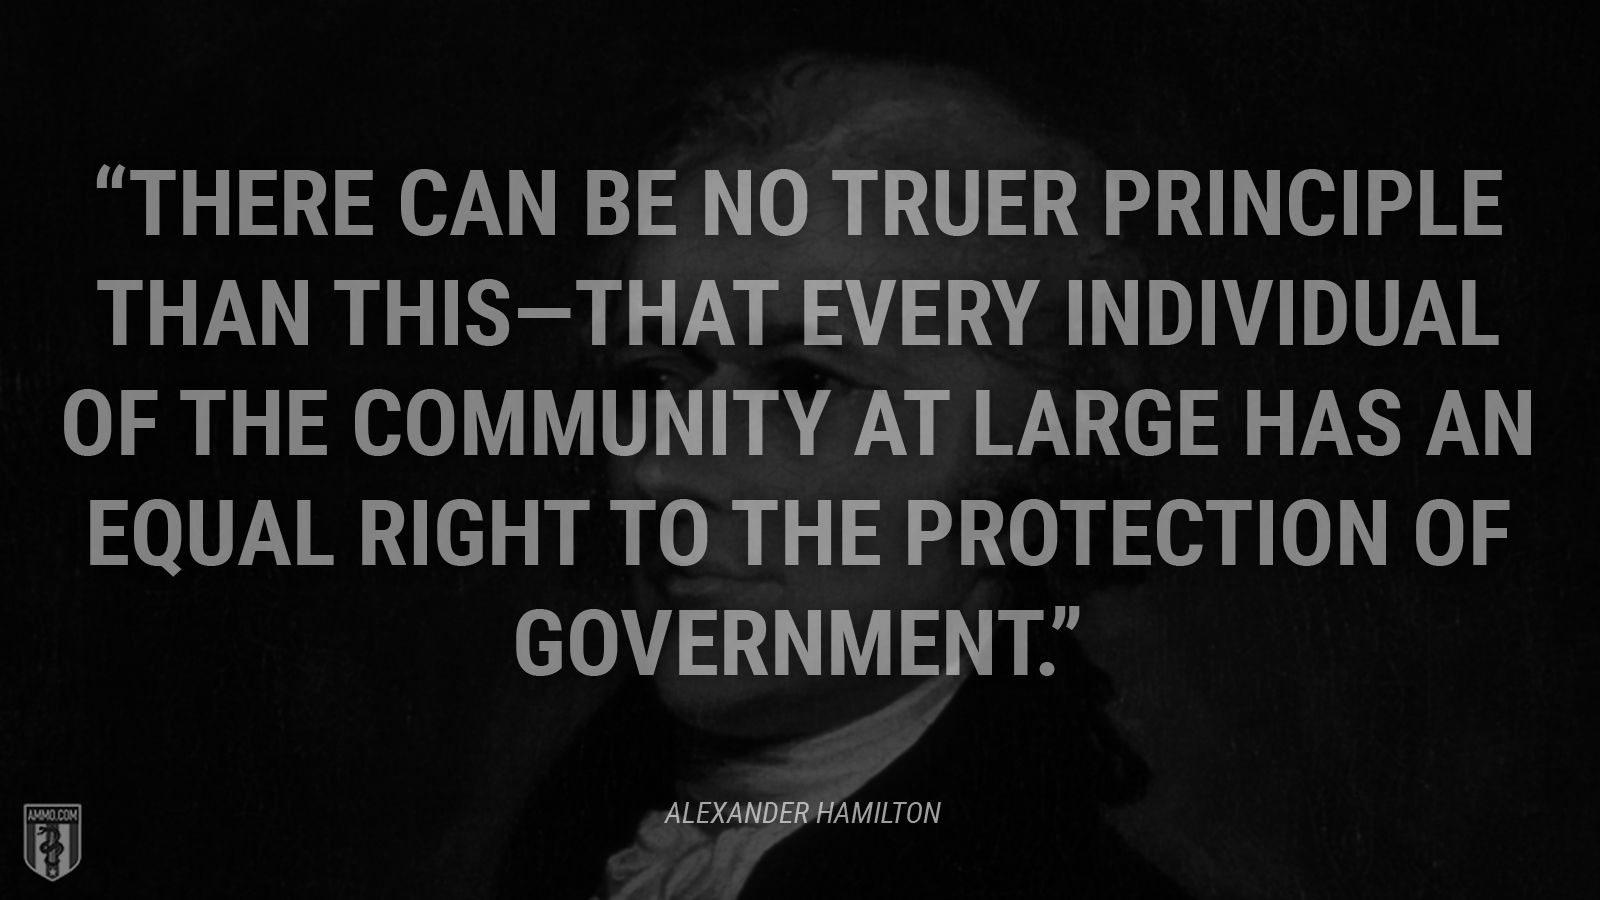 """""""There can be no truer principle than this—that every individual of the community at large has an equal right to the protection of government."""" - Alexander Hamilton"""